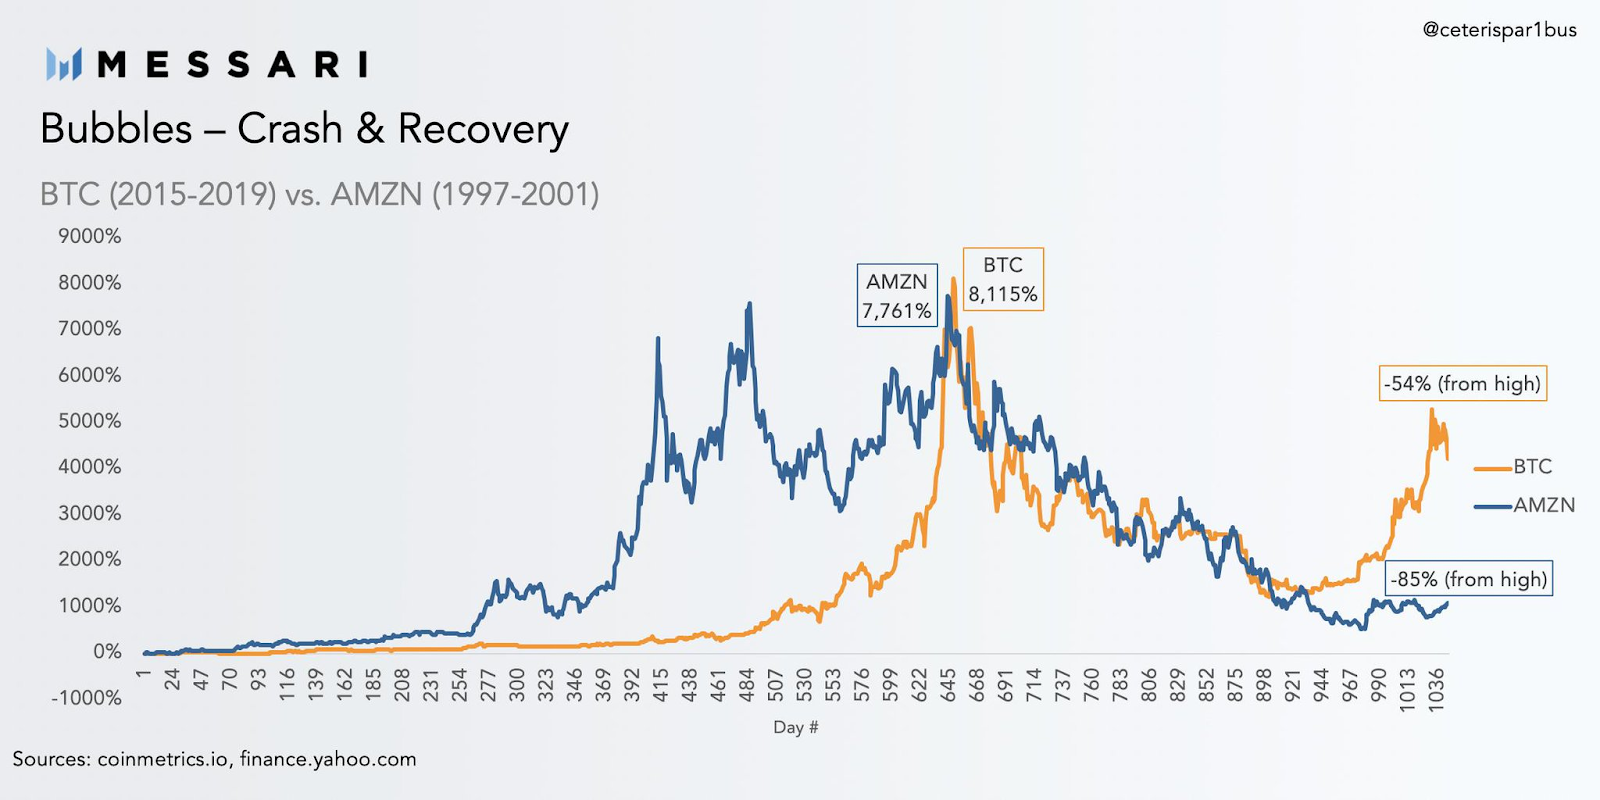 Bitcoin and Amazon 'bubbles' comparison, 2015-2019